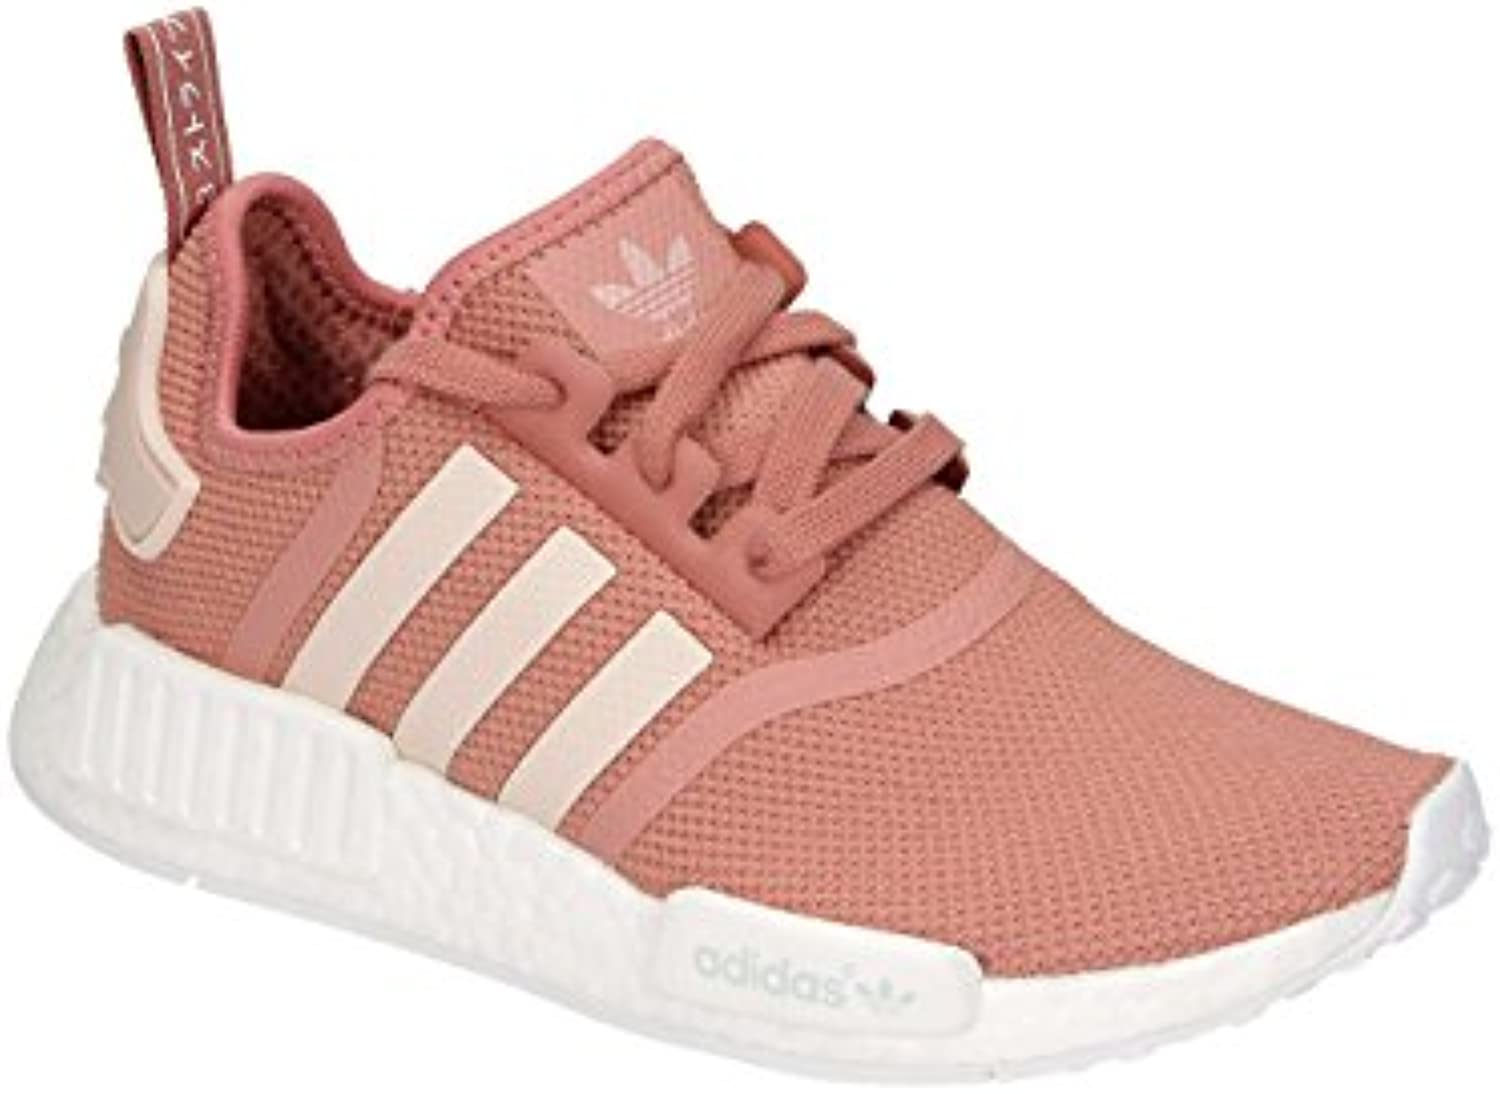 Adidas NMD_R1 W, raw pink/vapour pink/ftwr white